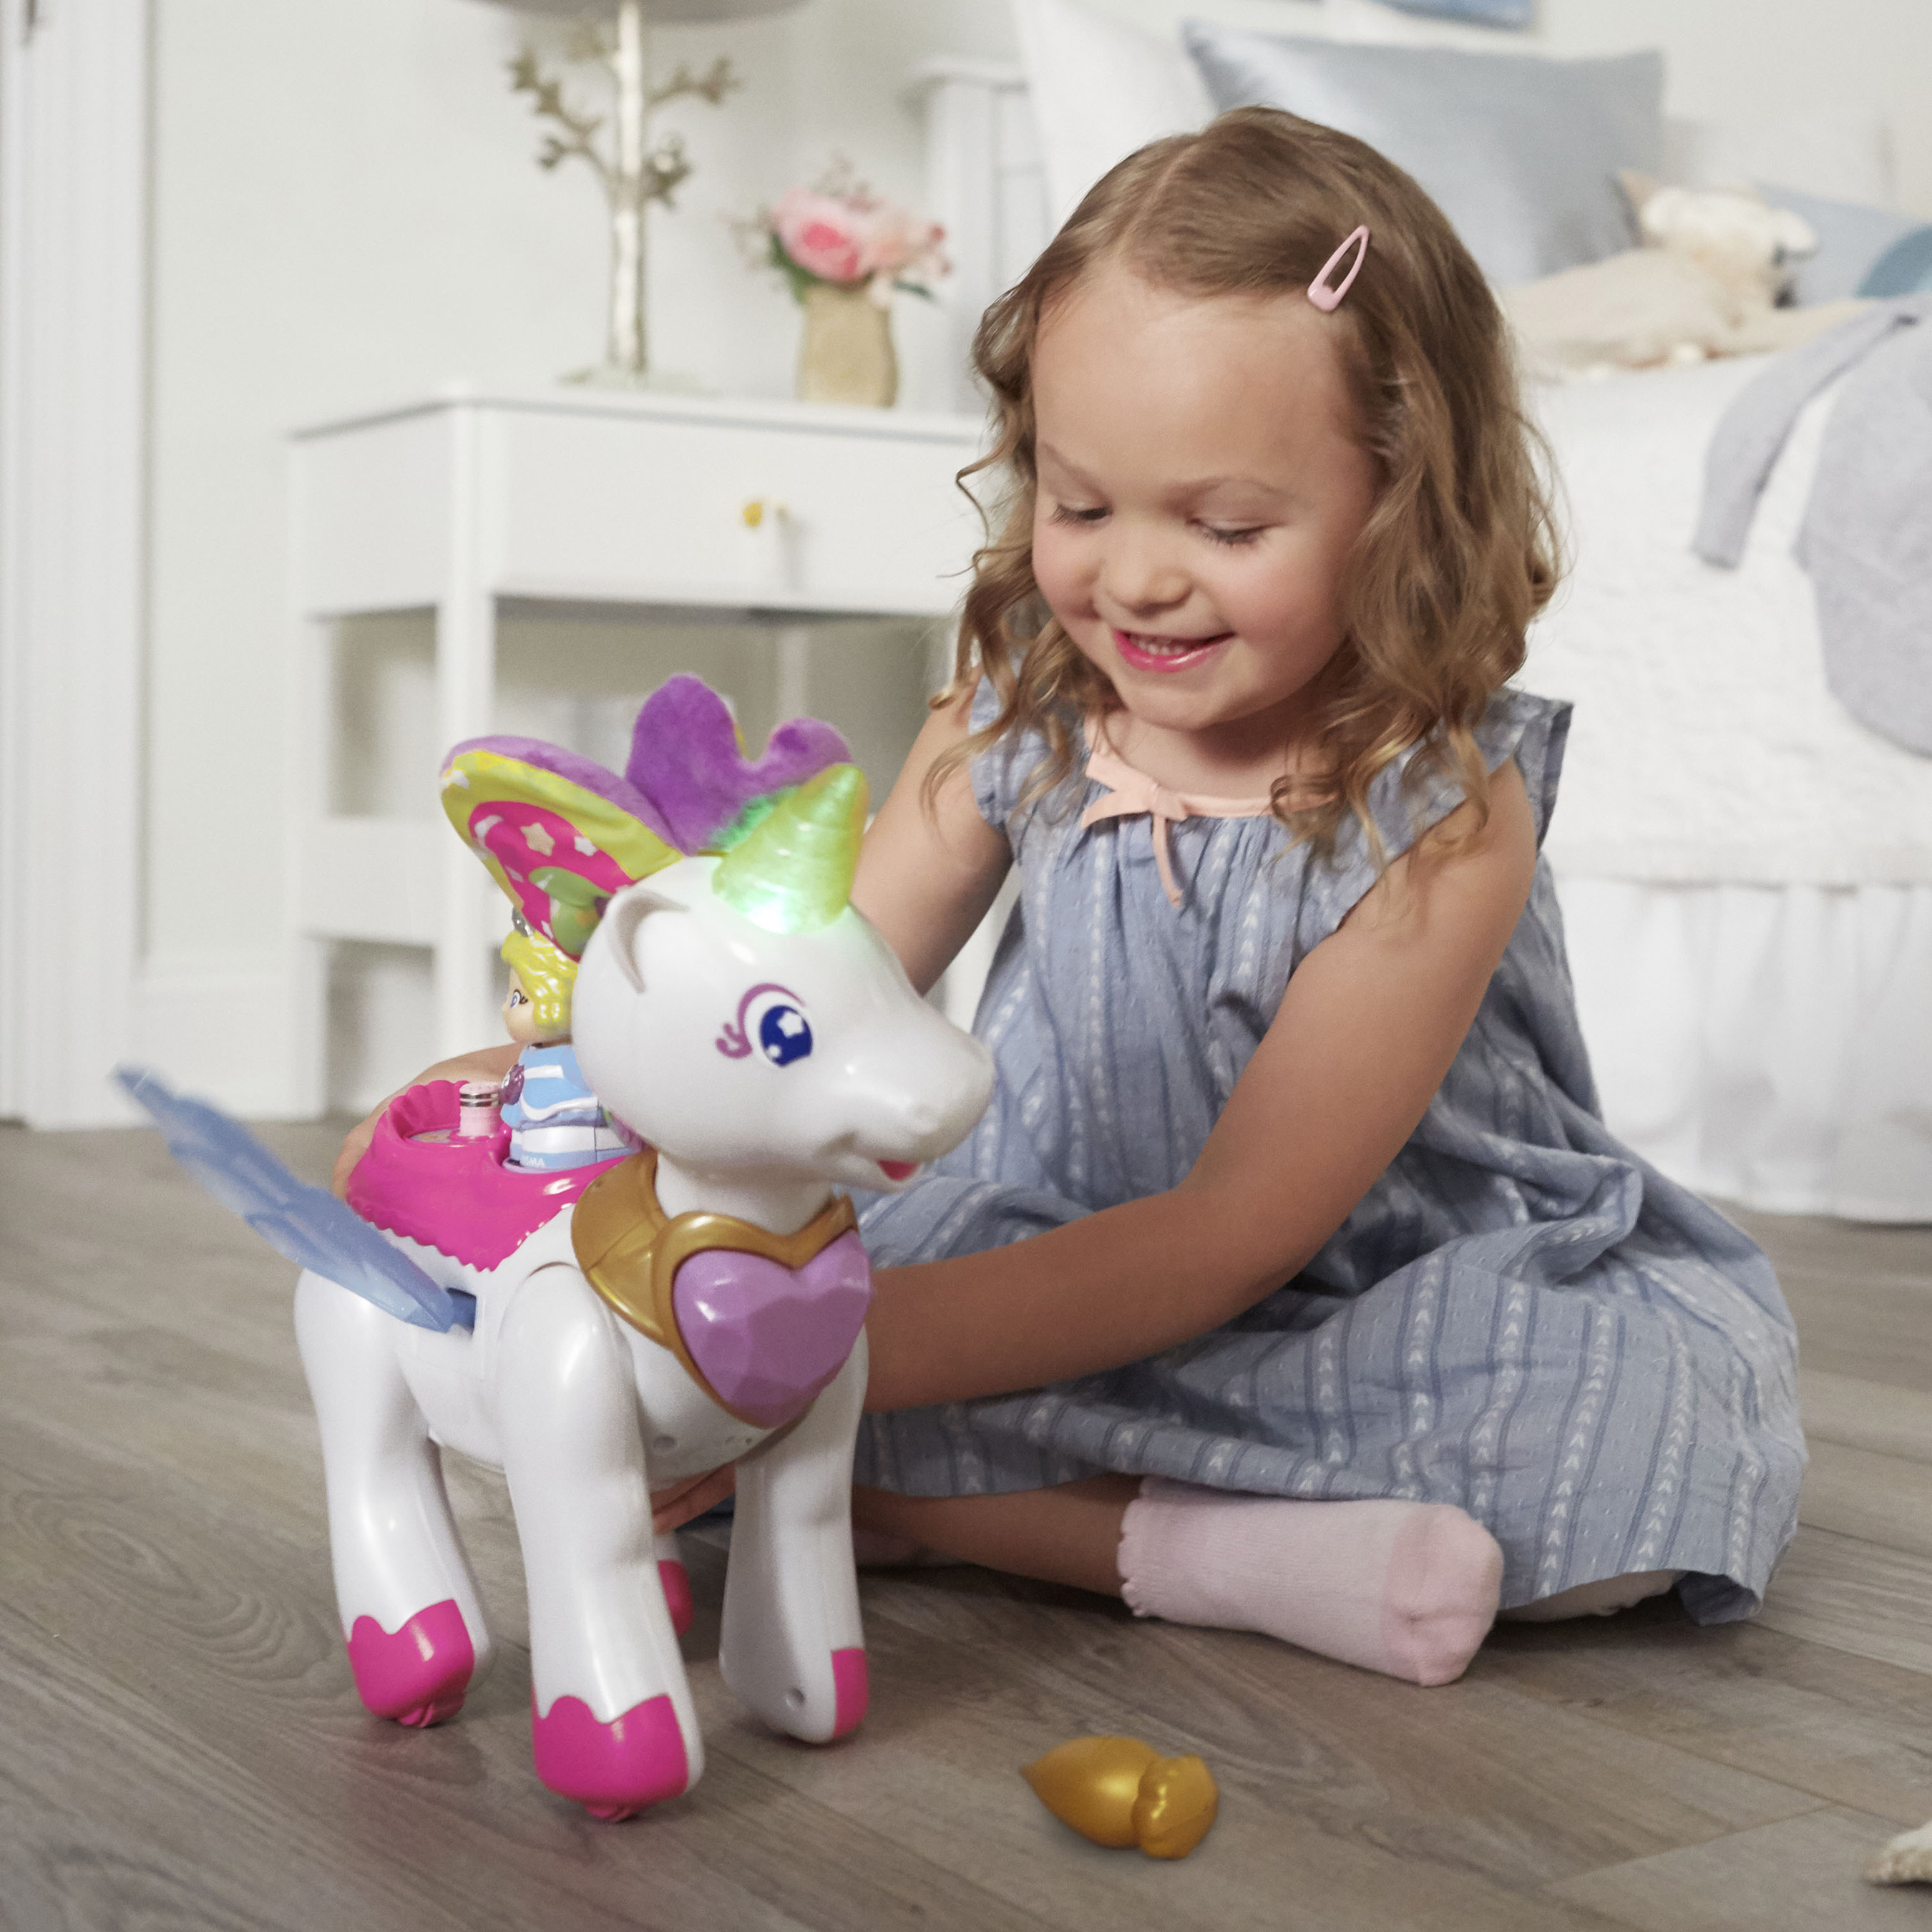 VTech® delivers engaging play experiences with exciting new themes to award-winning Go! Go! Smart Lines